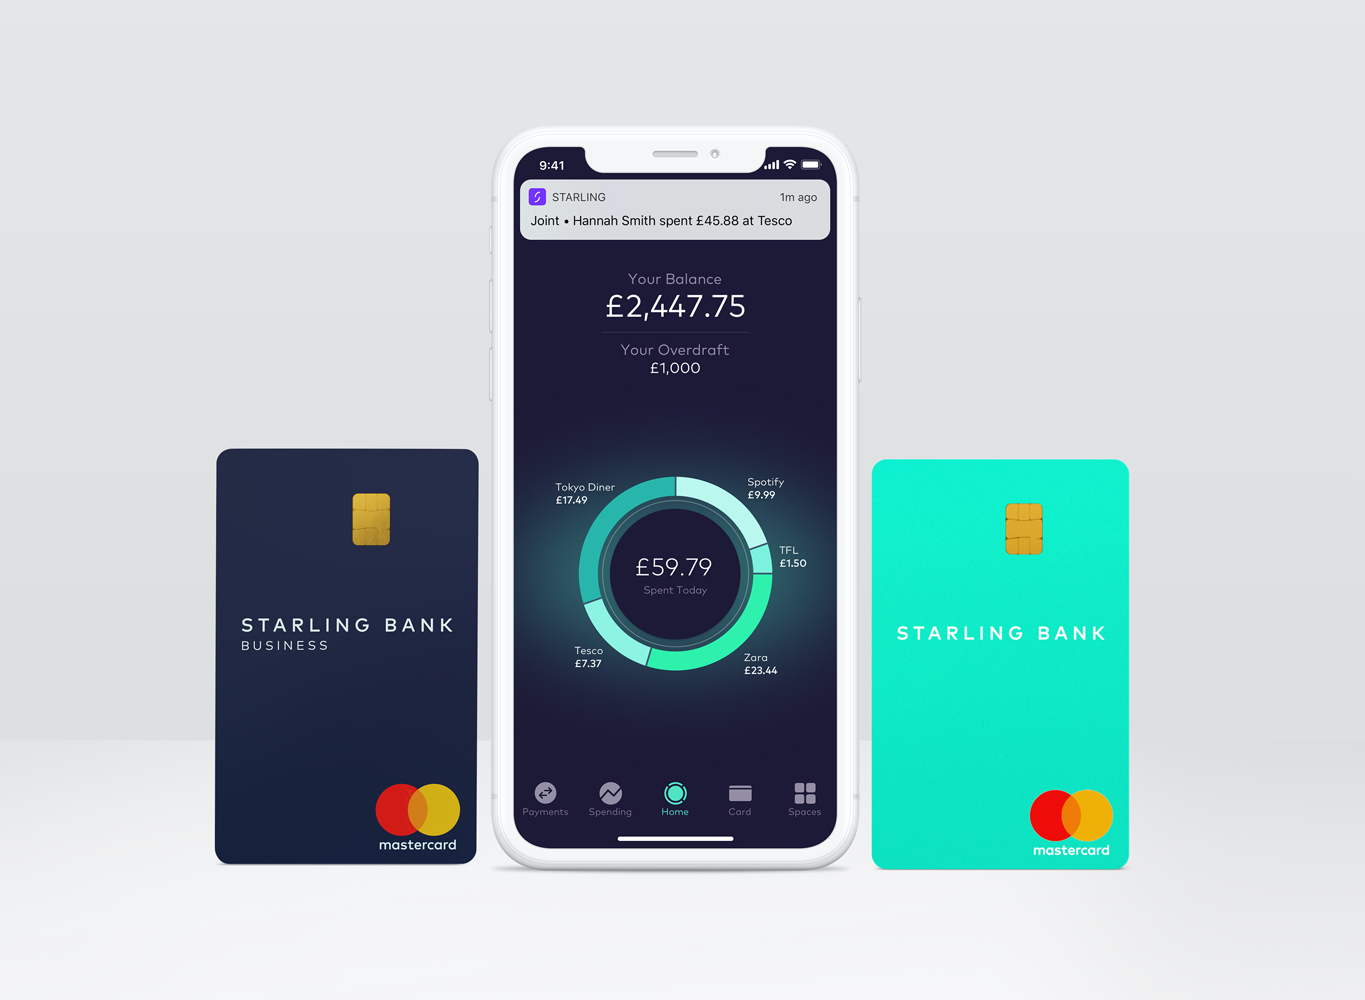 Starling Bank Business